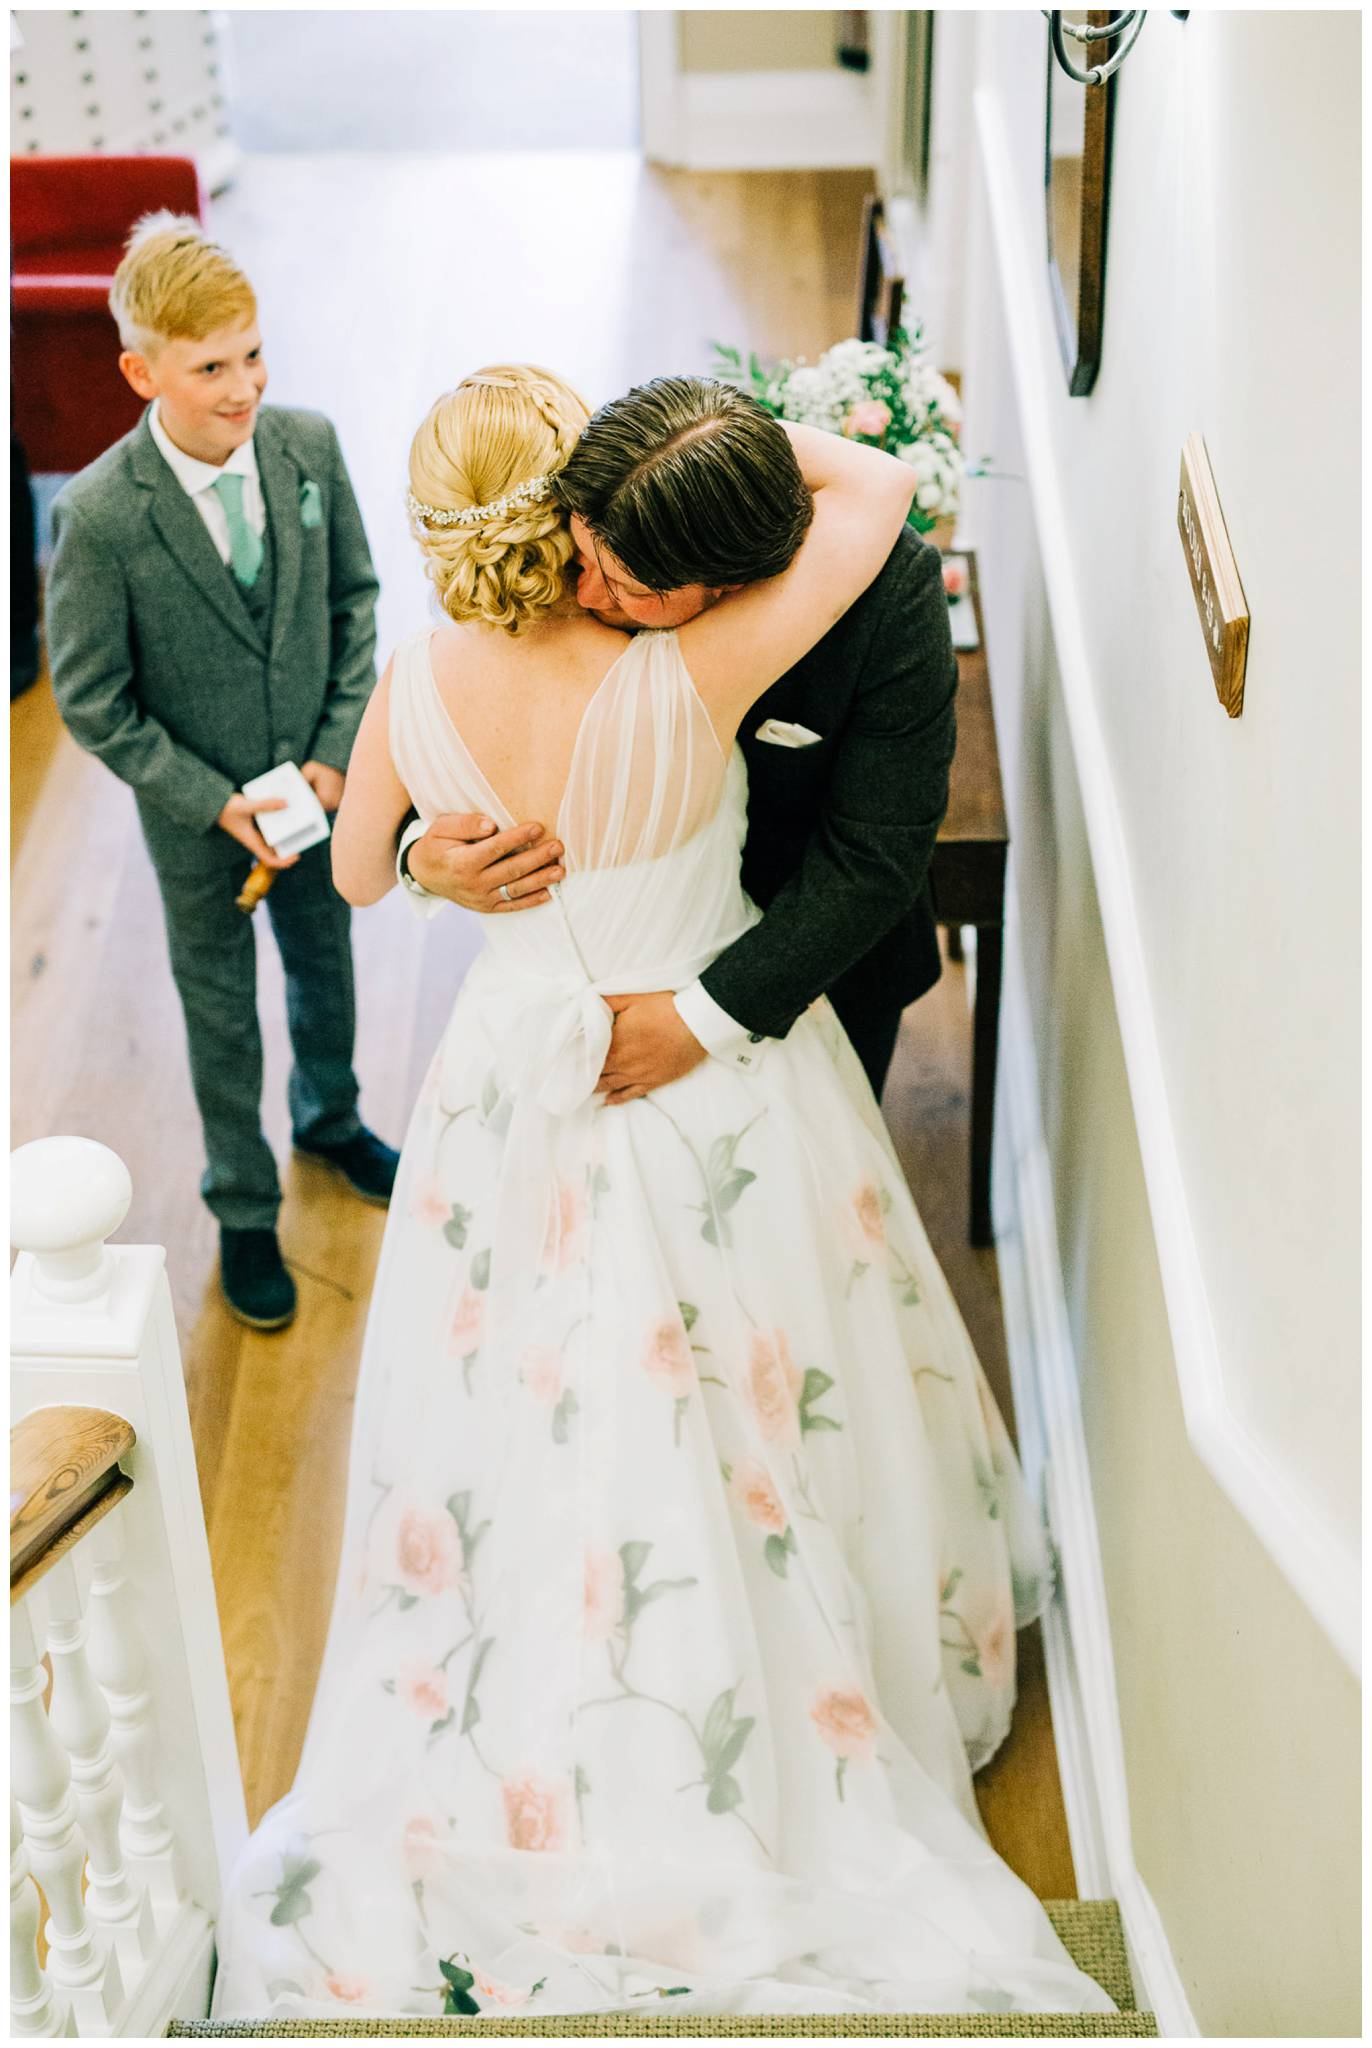 Natural wedding photography Manchester - Clare Robinson Photography_0171.jpg